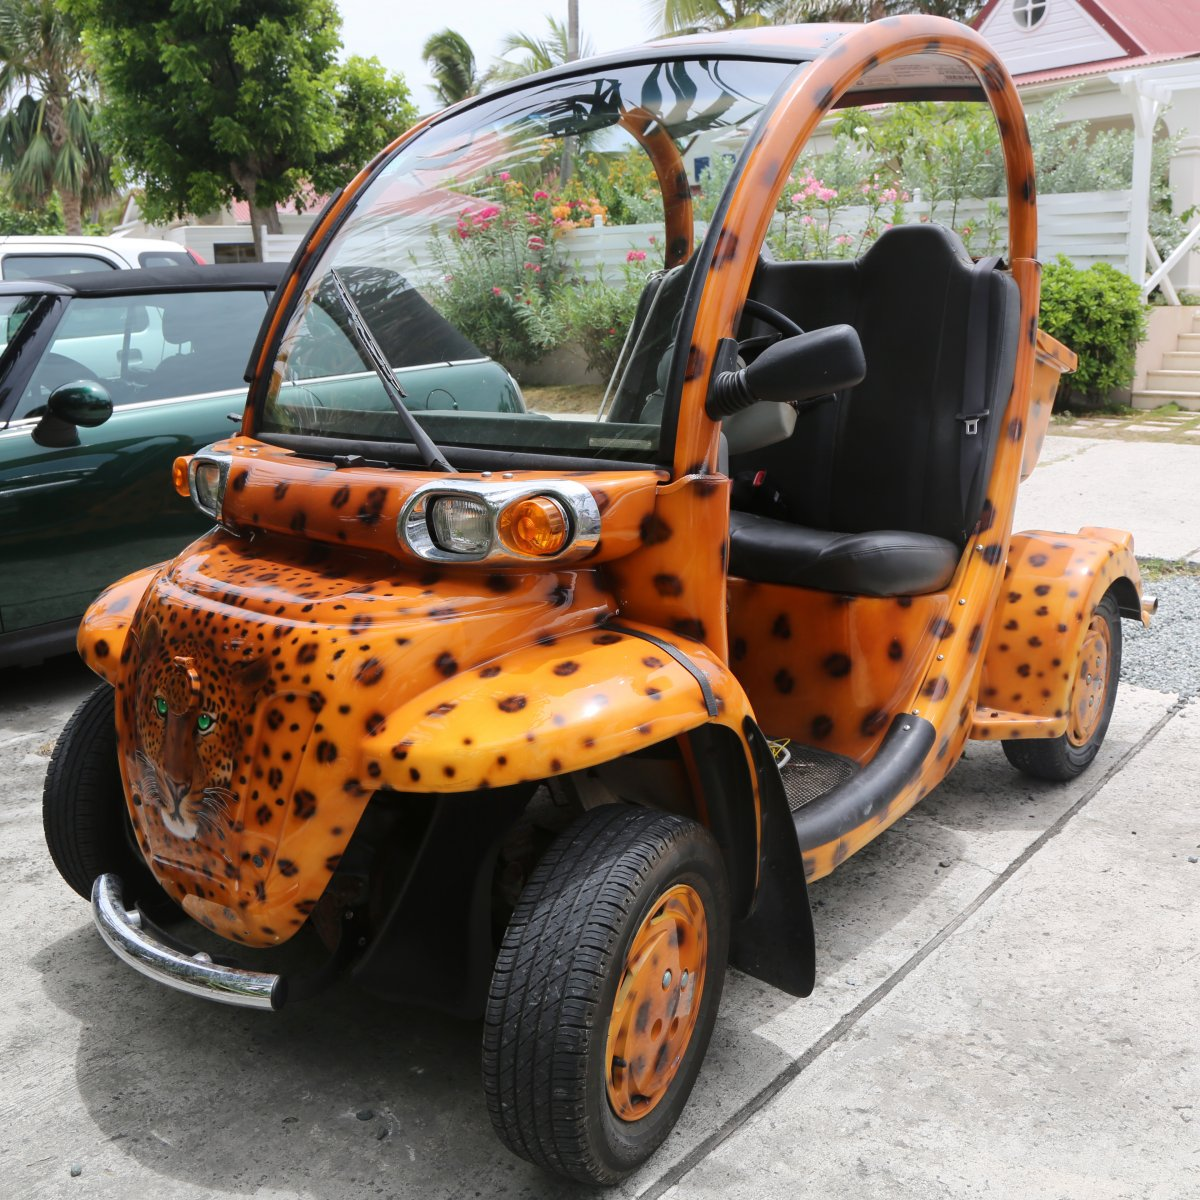 Electric Vehicle in St. Barts